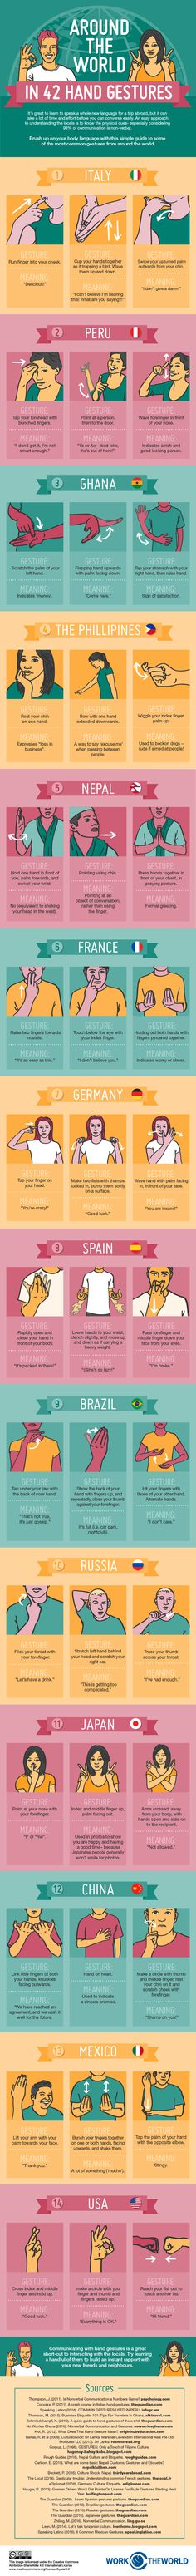 What Do Hand Gestures Mean in Different Parts of the World?